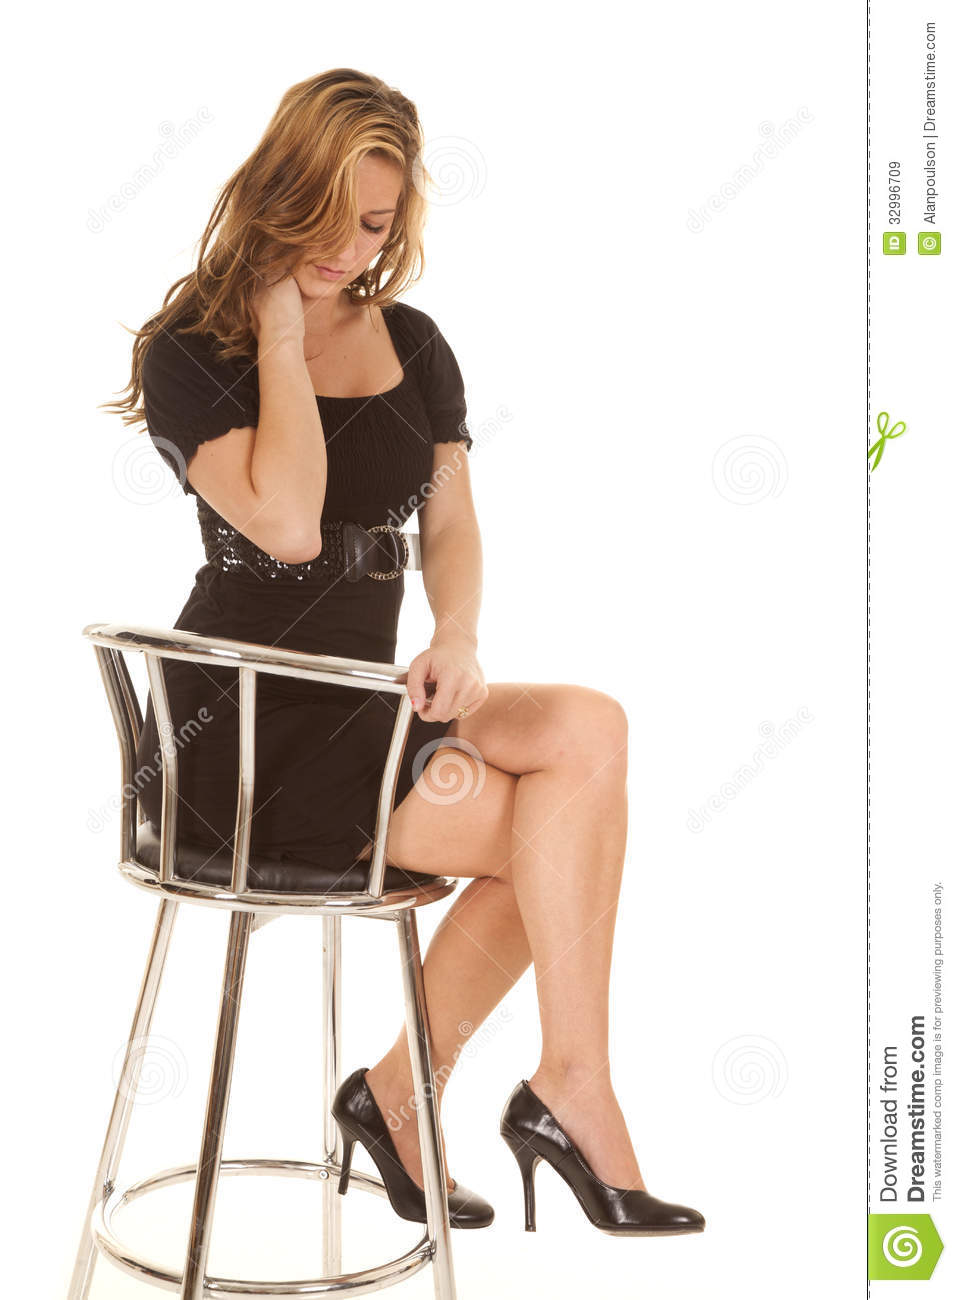 Woman In Black Dress Sitting On Chair Royalty Free Stock  : woman black dress sitting chair legs crossed 32996709 from www.dreamstime.com size 957 x 1300 jpeg 92kB